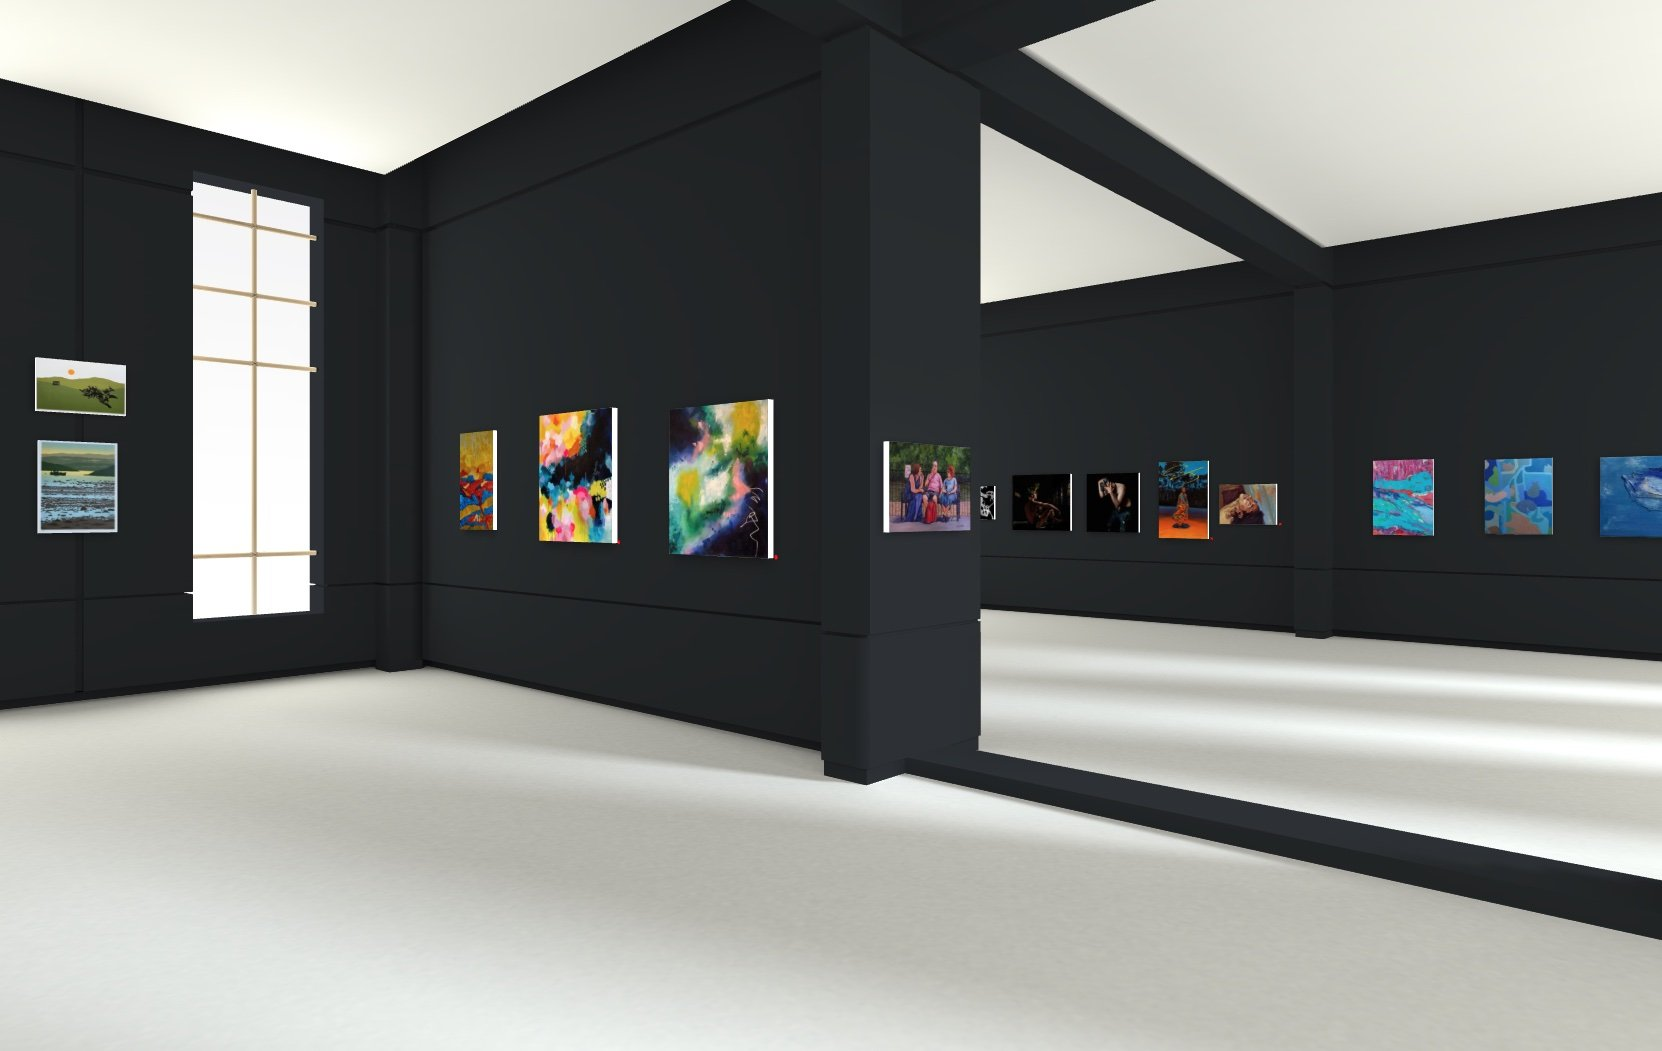 Quay Street Gallery exhibition view two